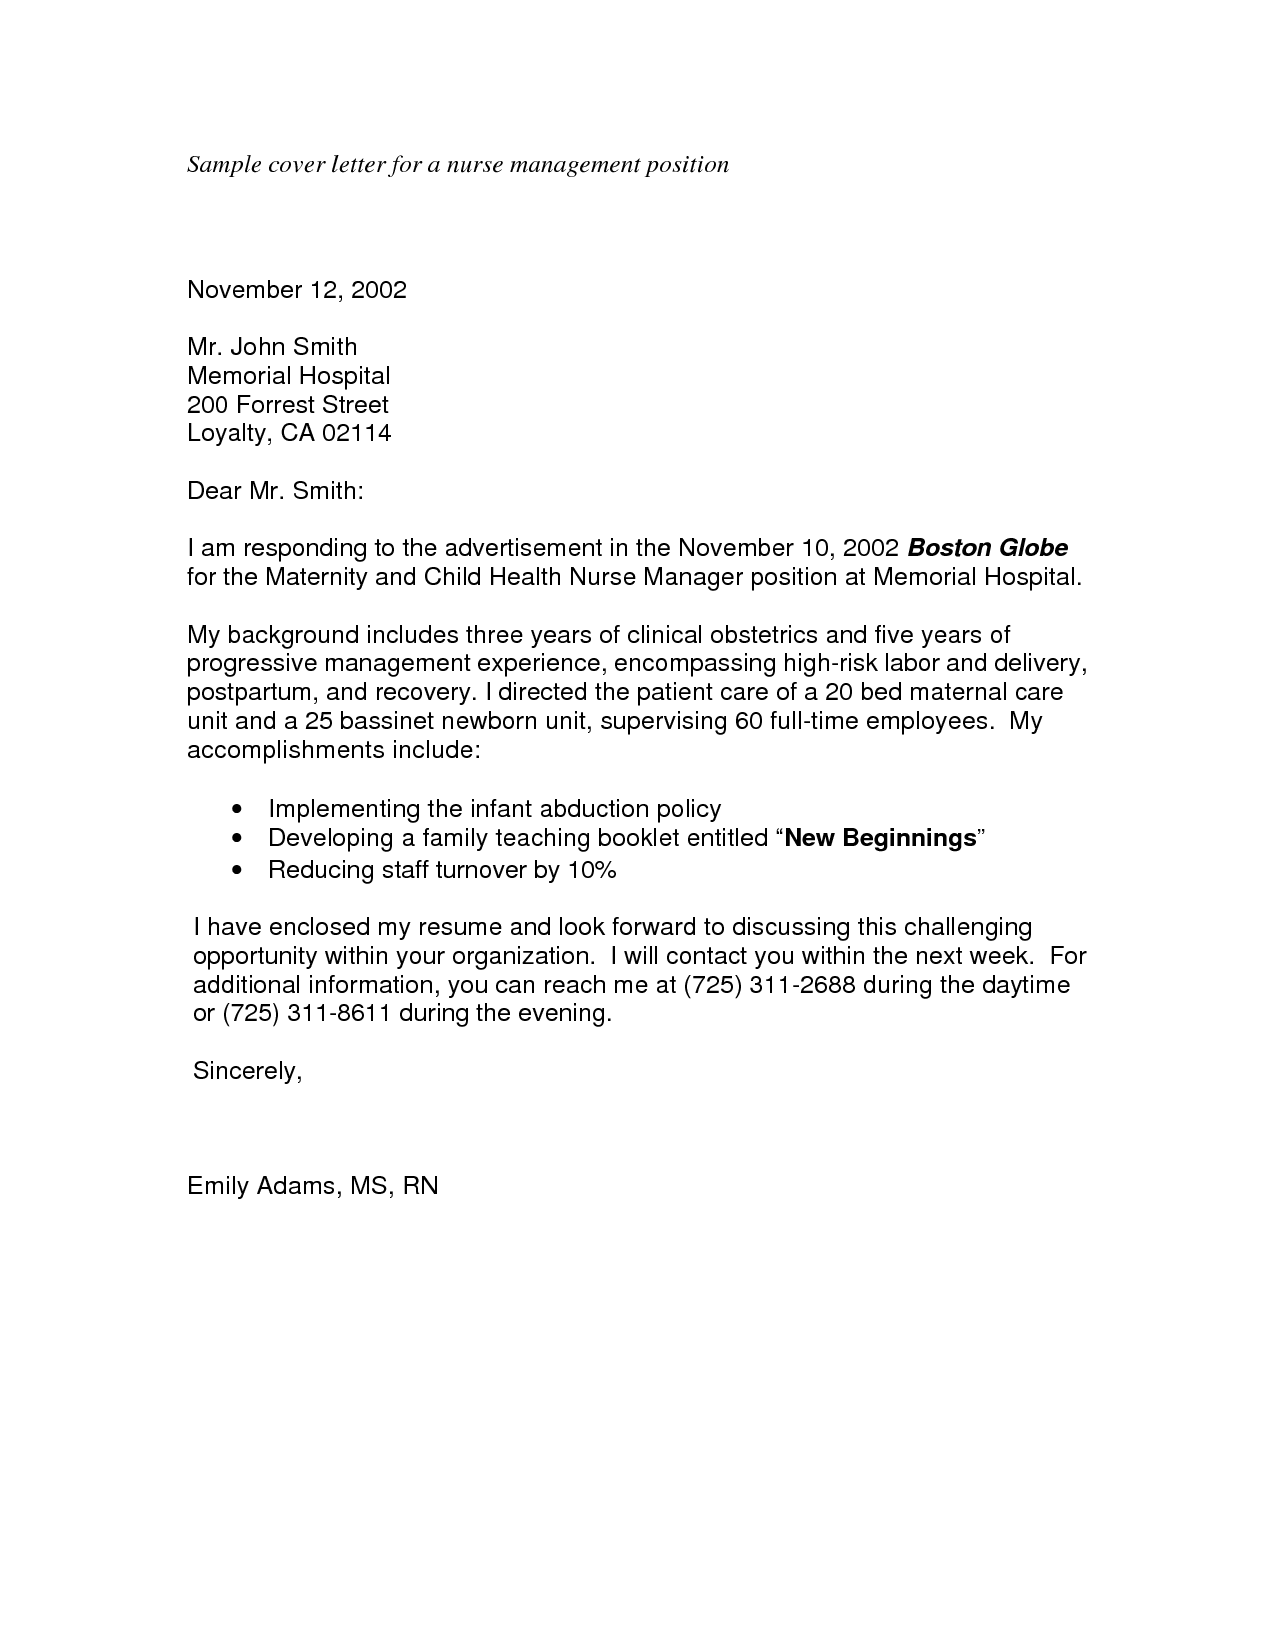 Sample nursing application cover letters sample cover letter for sample nursing application cover letters sample cover letter for a nurse management position pdf madrichimfo Gallery